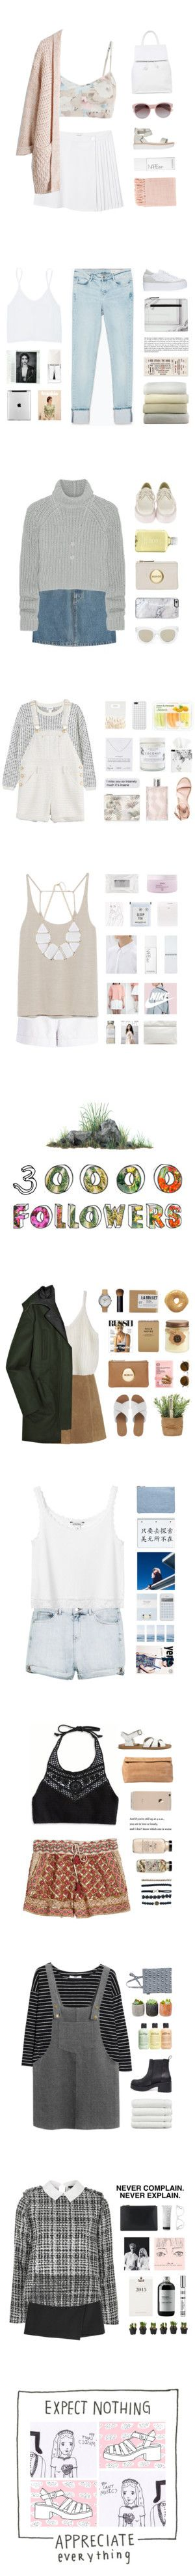 """""""MY TOP SETS (FASHION & ART)"""" by janettetang ❤ liked on Polyvore"""